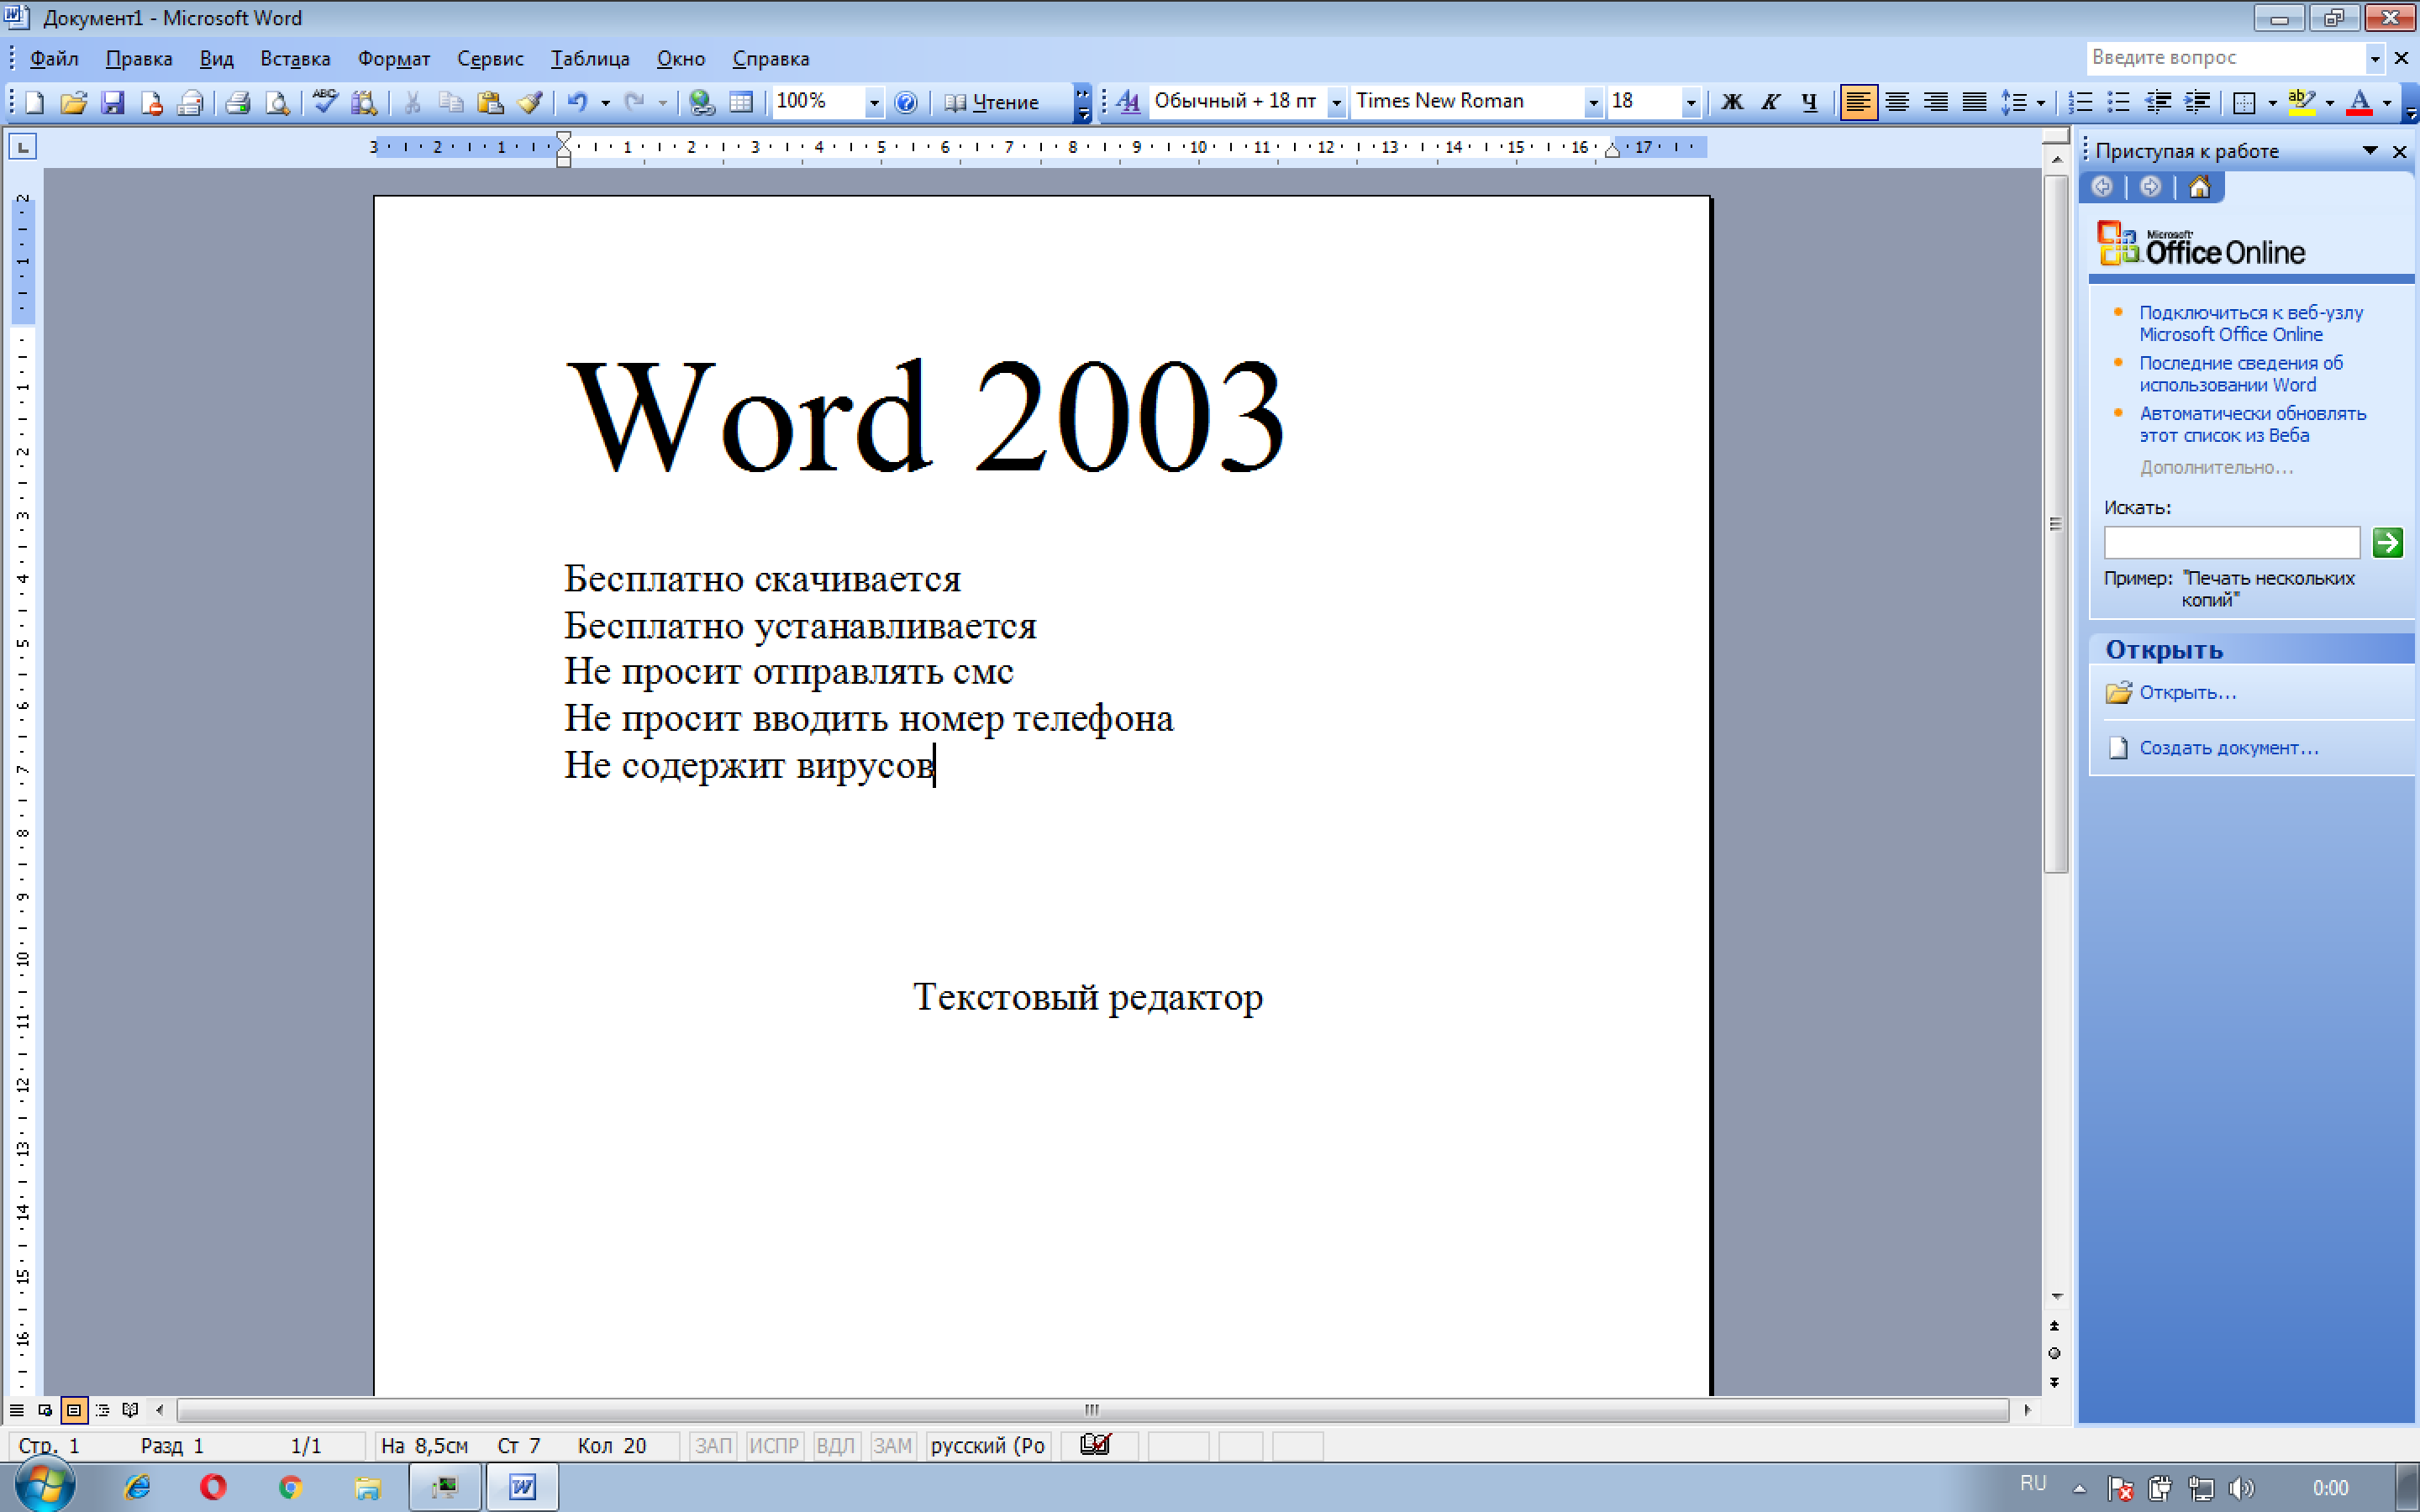 word 2003 free download - DriverLayer Search Engine